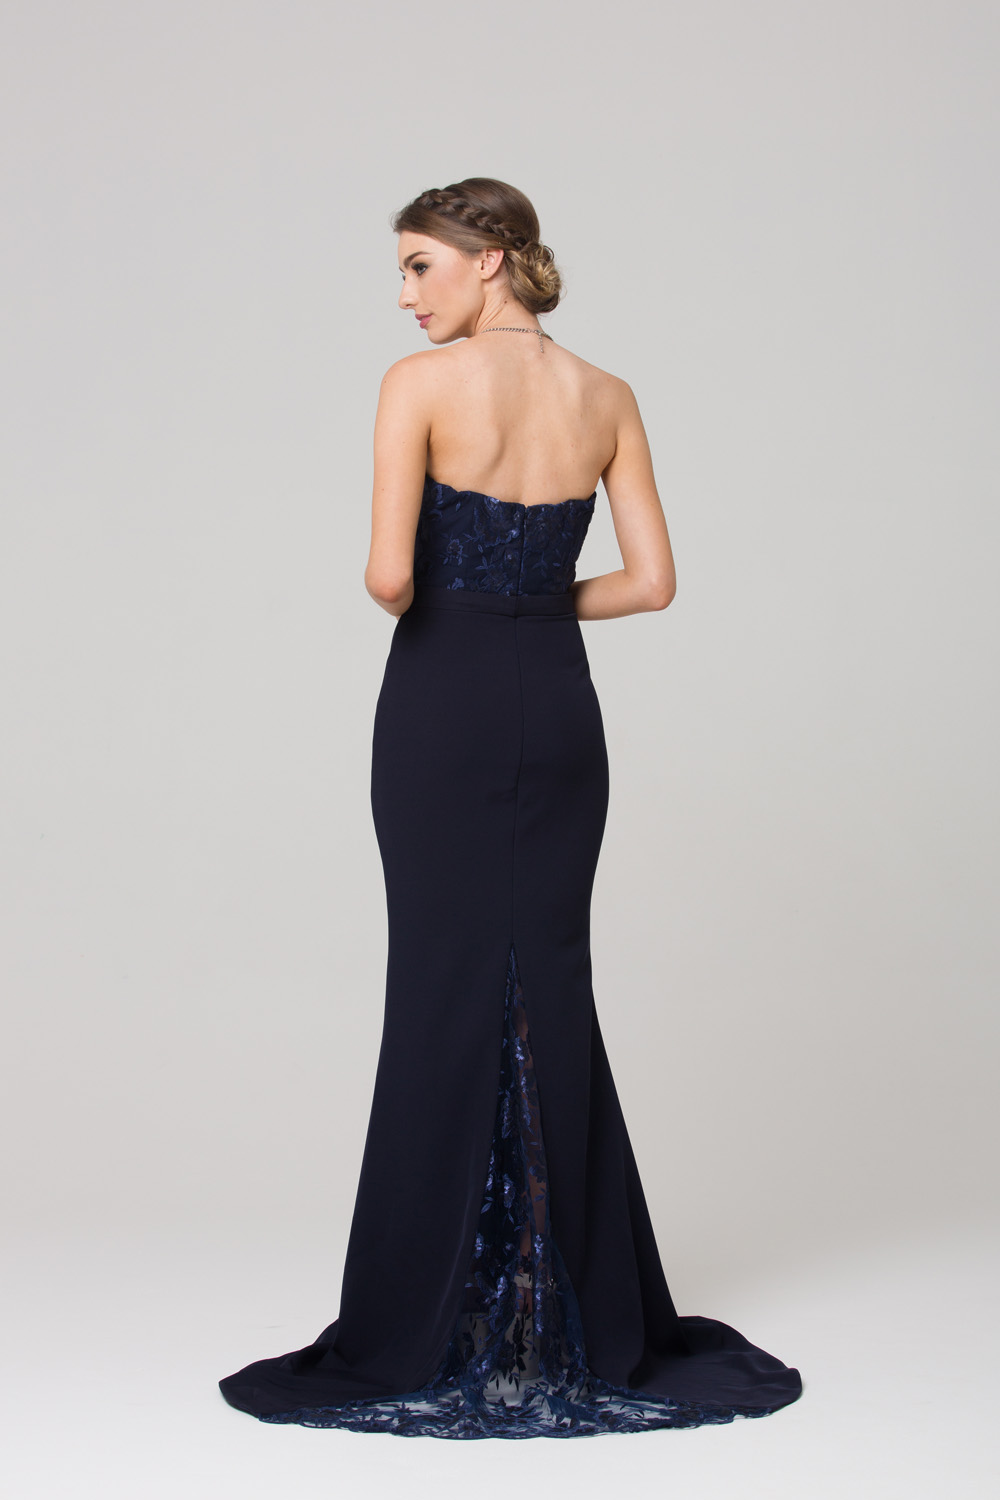 Paloma fitted strapless bridesmaid dress sentani boutique for Fitted strapless wedding dress